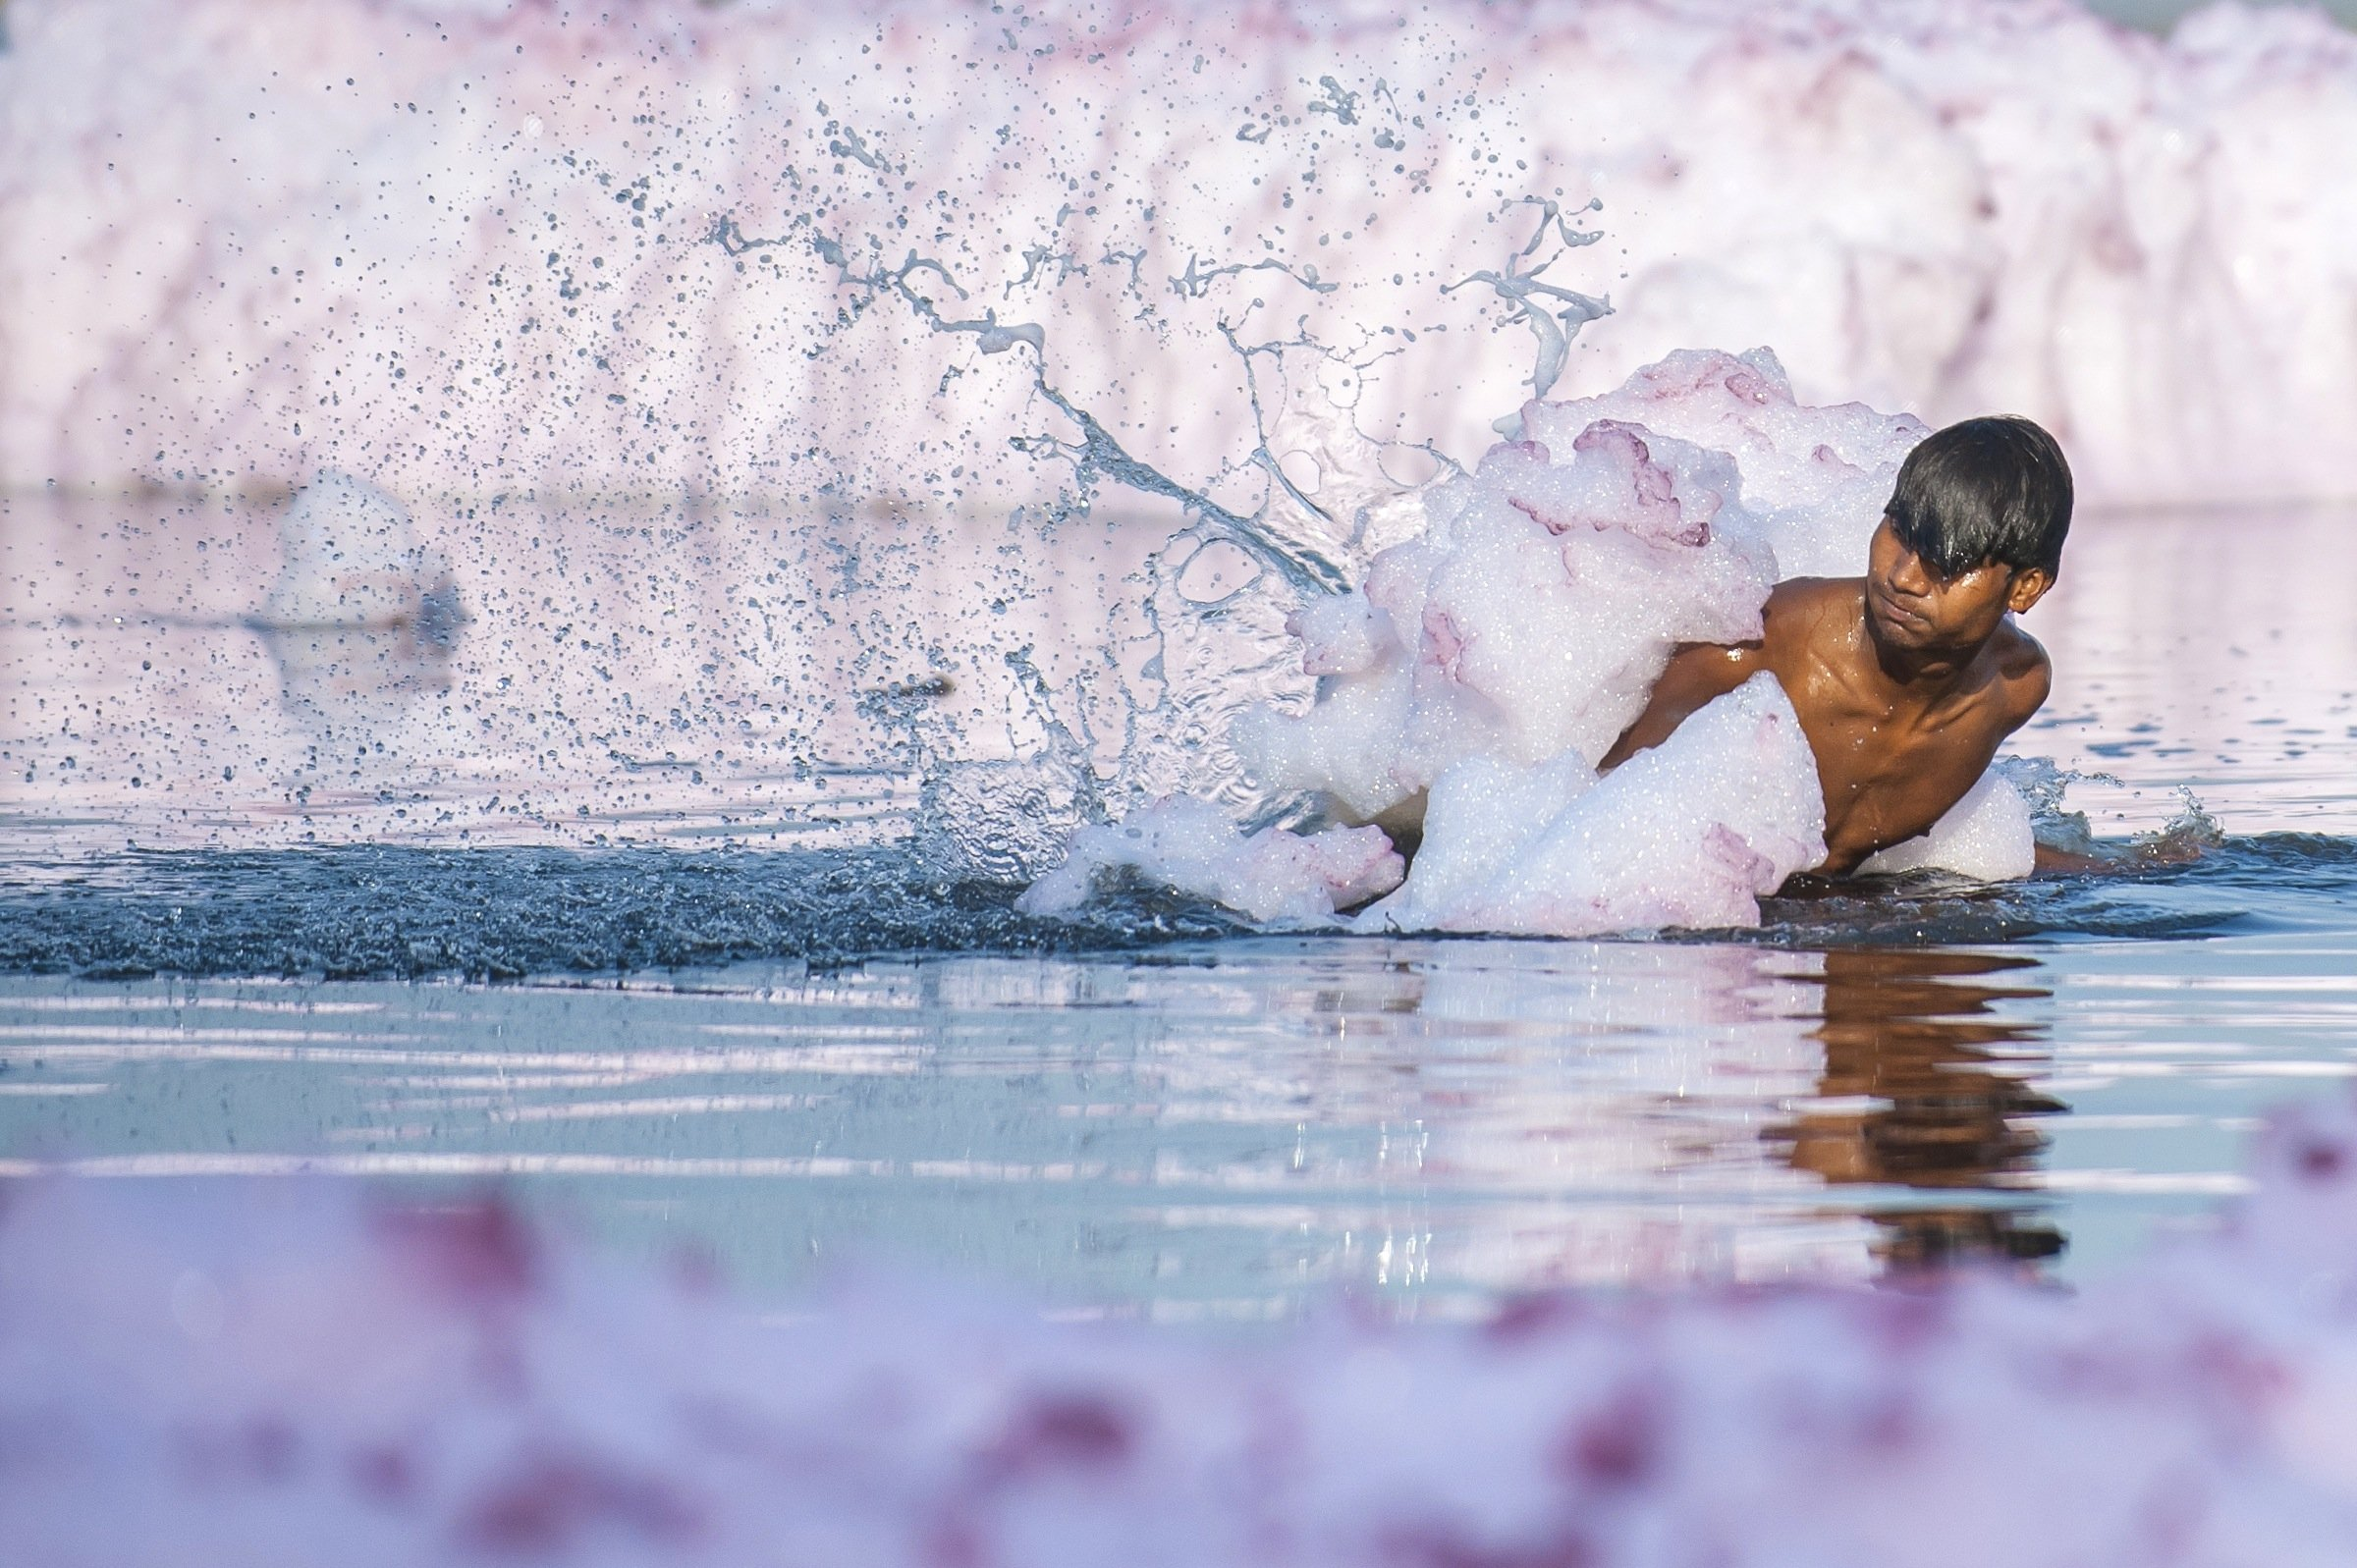 A man tries to get rid of a thick layer of flowing foam, caused by extreme pollution, as he takes a bath in river Yamuna on March 19, 2014 in New Delhi. Yamuna is the largest tributary of the holy river, Ganges, and has often been described as the most polluted water body in northern India.